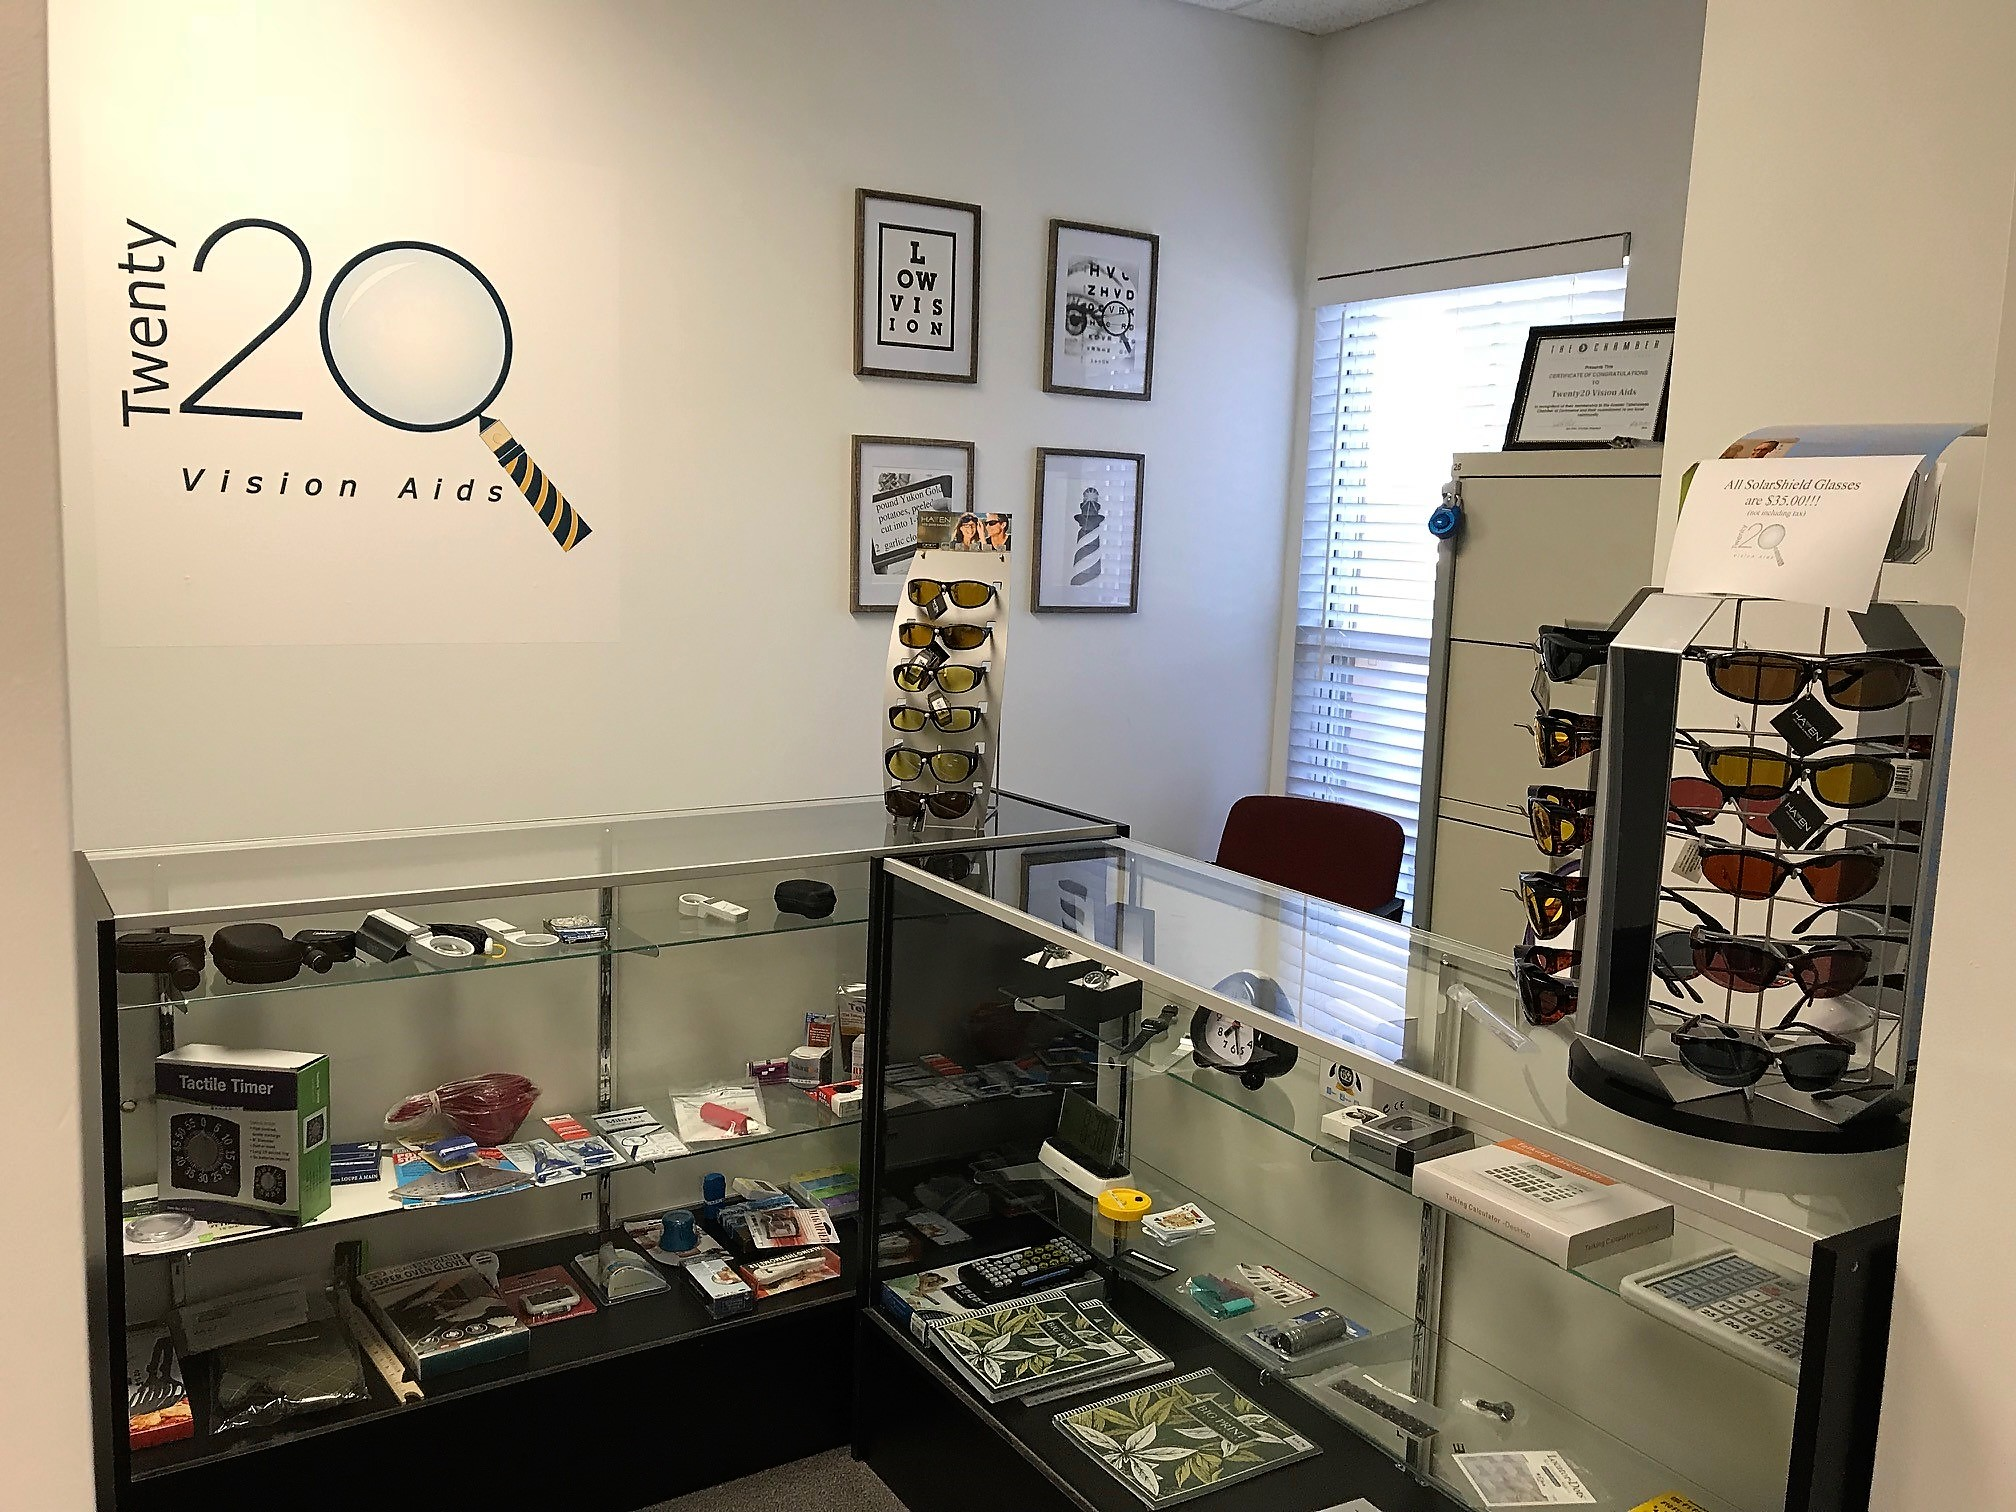 Photograph of the Twenty20 Vision store showing many items available for purchase